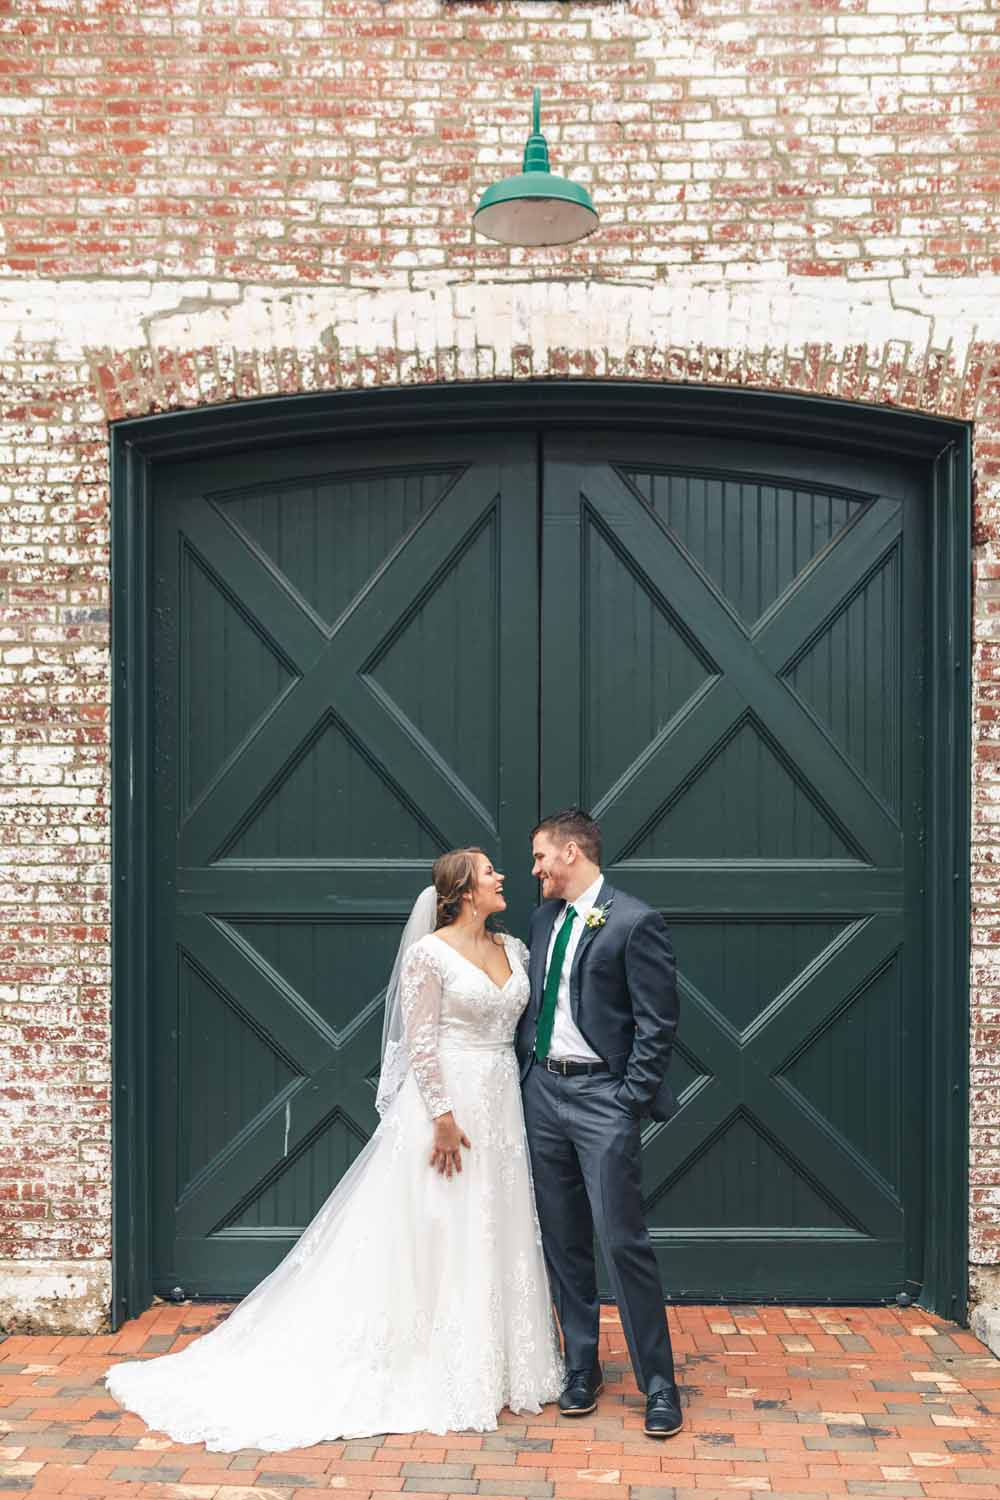 Bride and groom looking into each others eyes in front of brick wall with green door